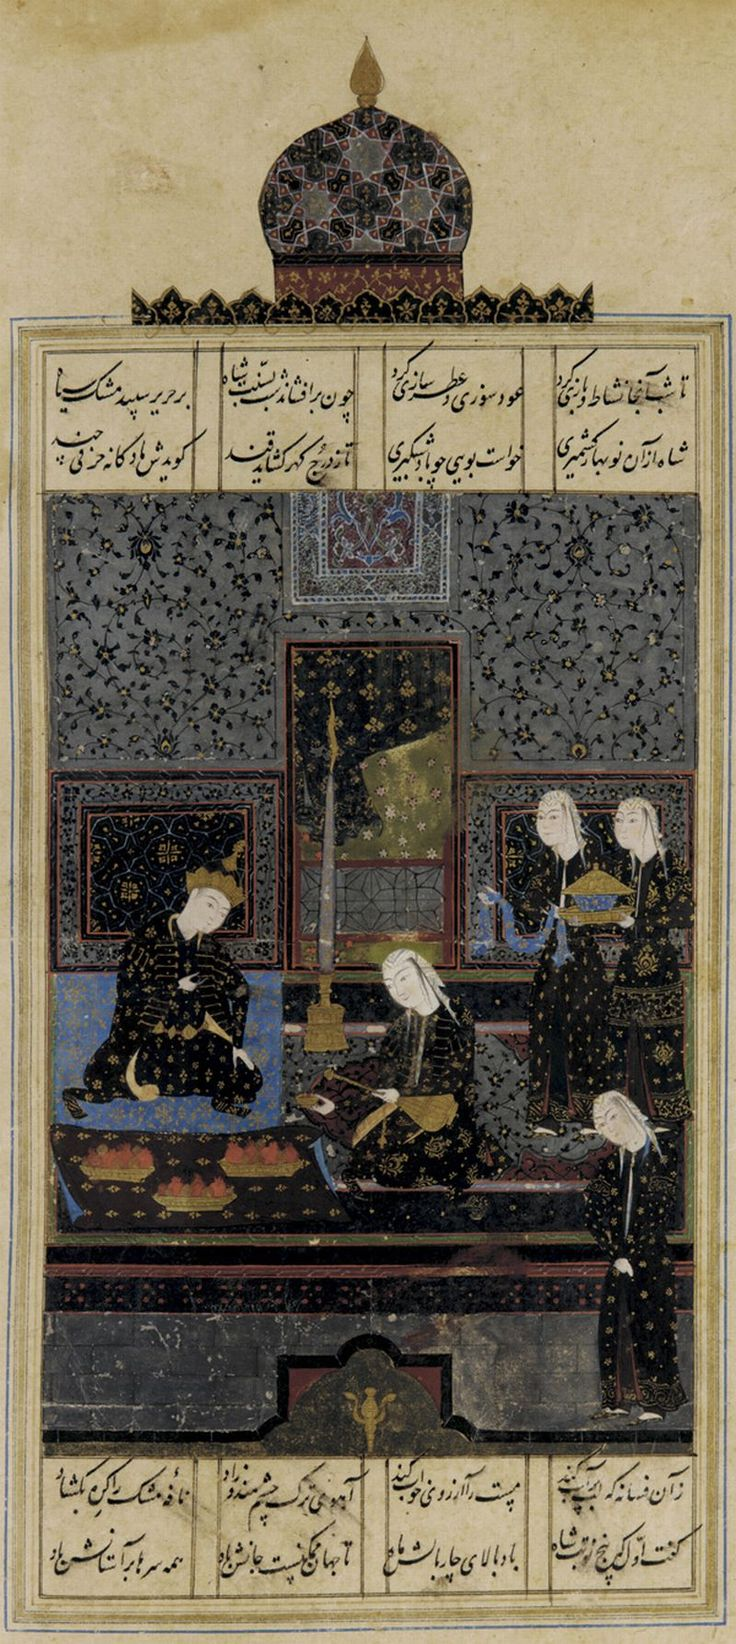 Folio from a Khamsa (Quintet) by Nizami; verso: Bahram Gur and the Indian princess in the black pavilion  1548  Found on yama-bato.tumblr.com